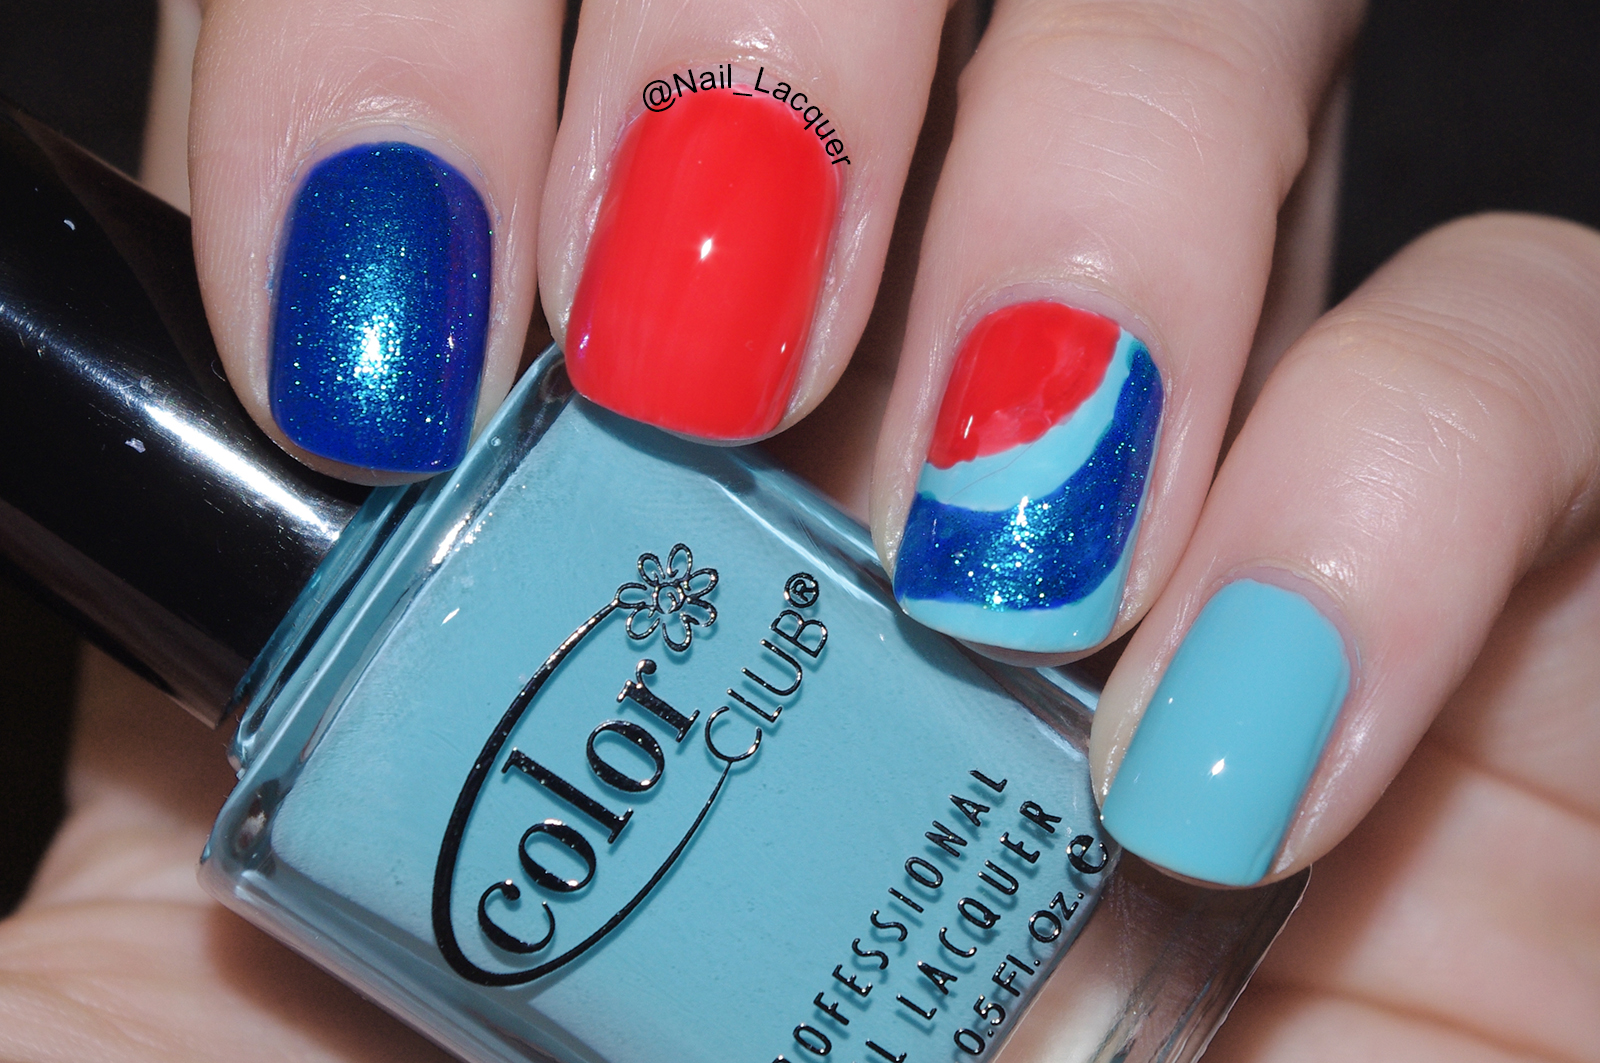 Color blocking nail art, not Pepsi advertisement